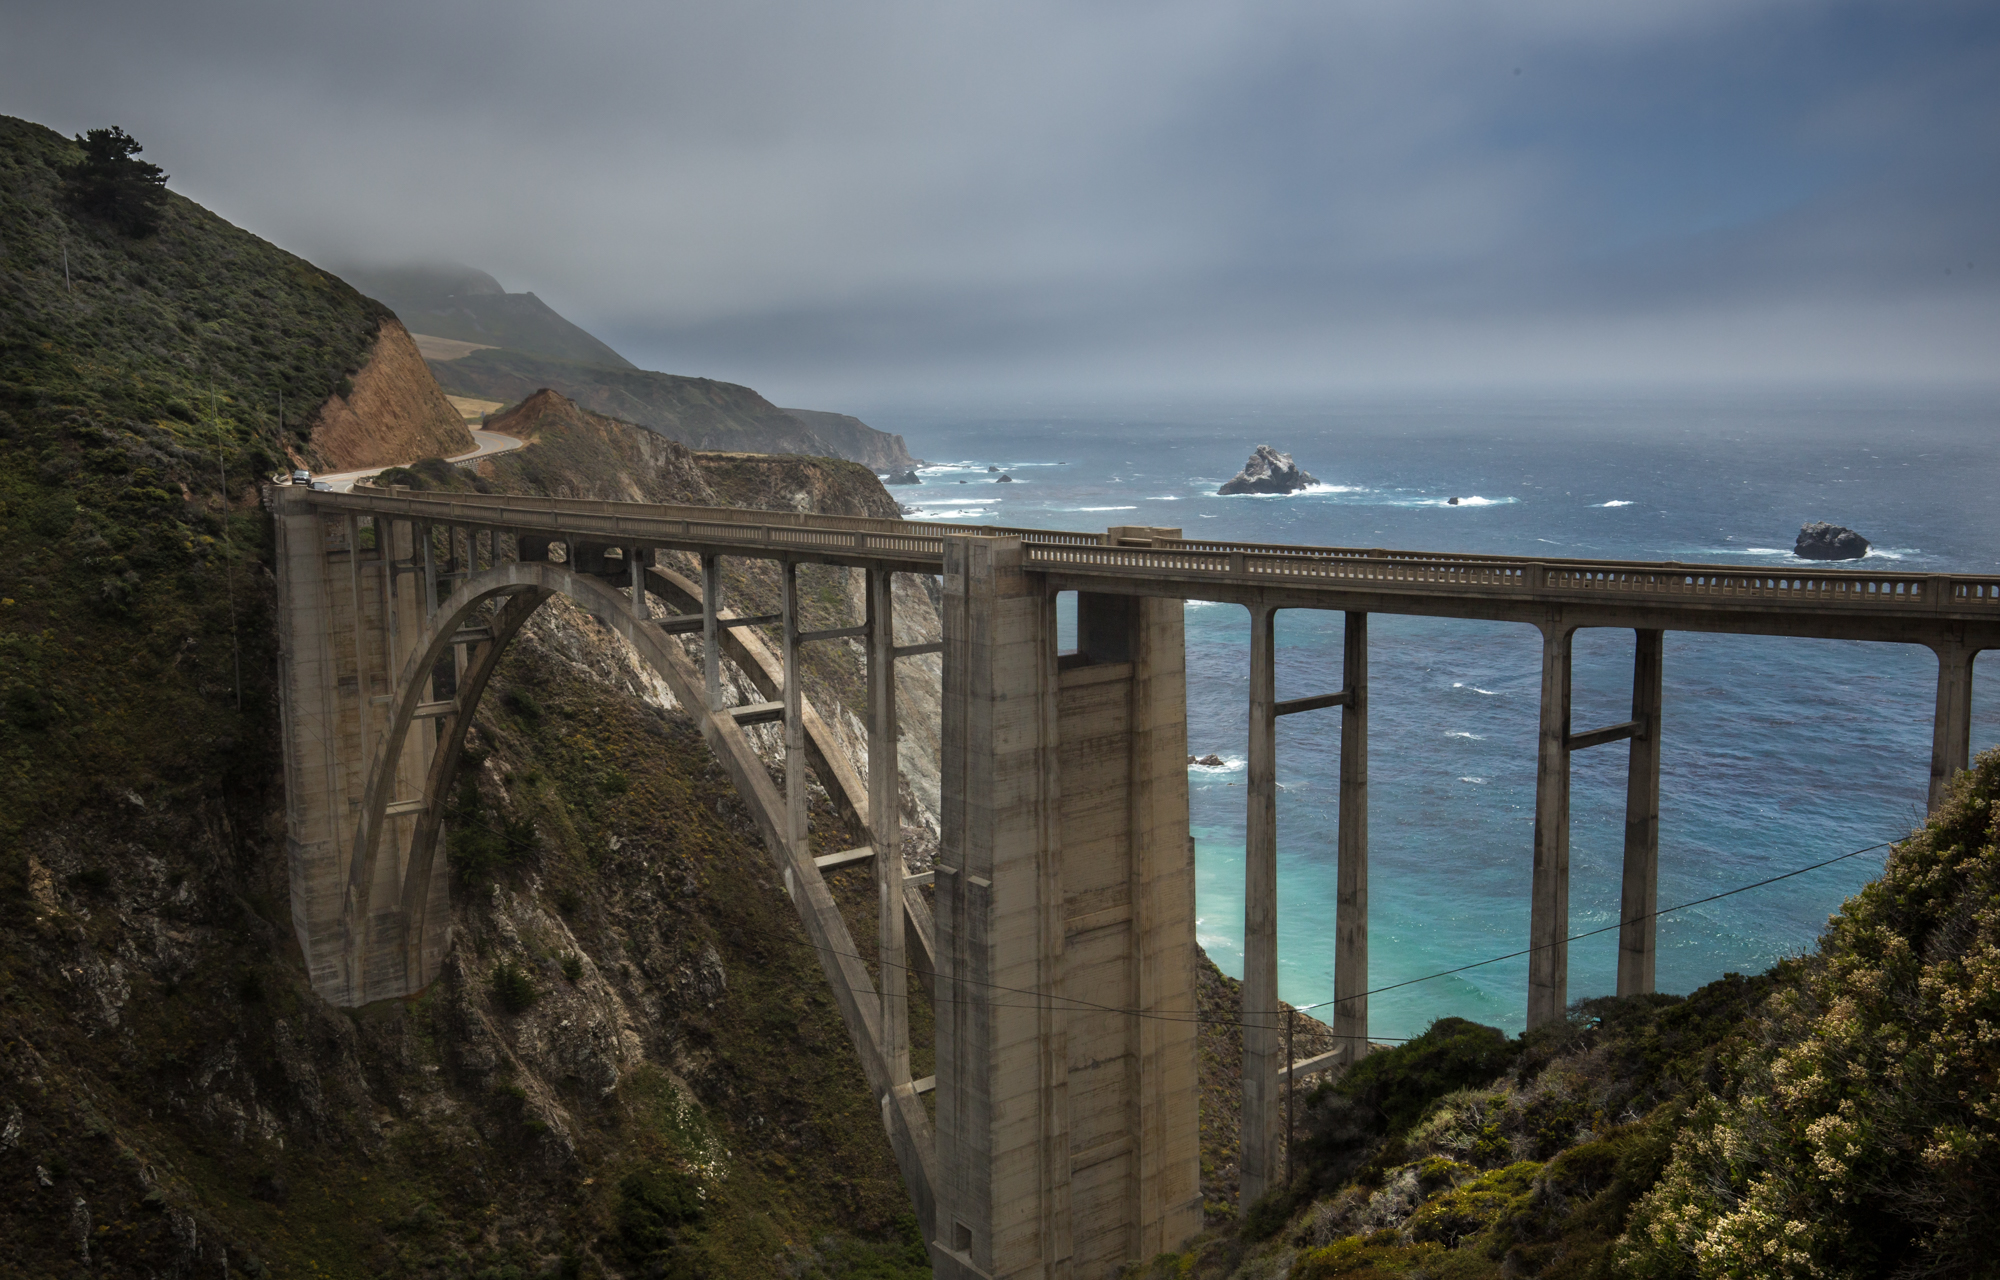 Bixby Bridge and Old Coast Road